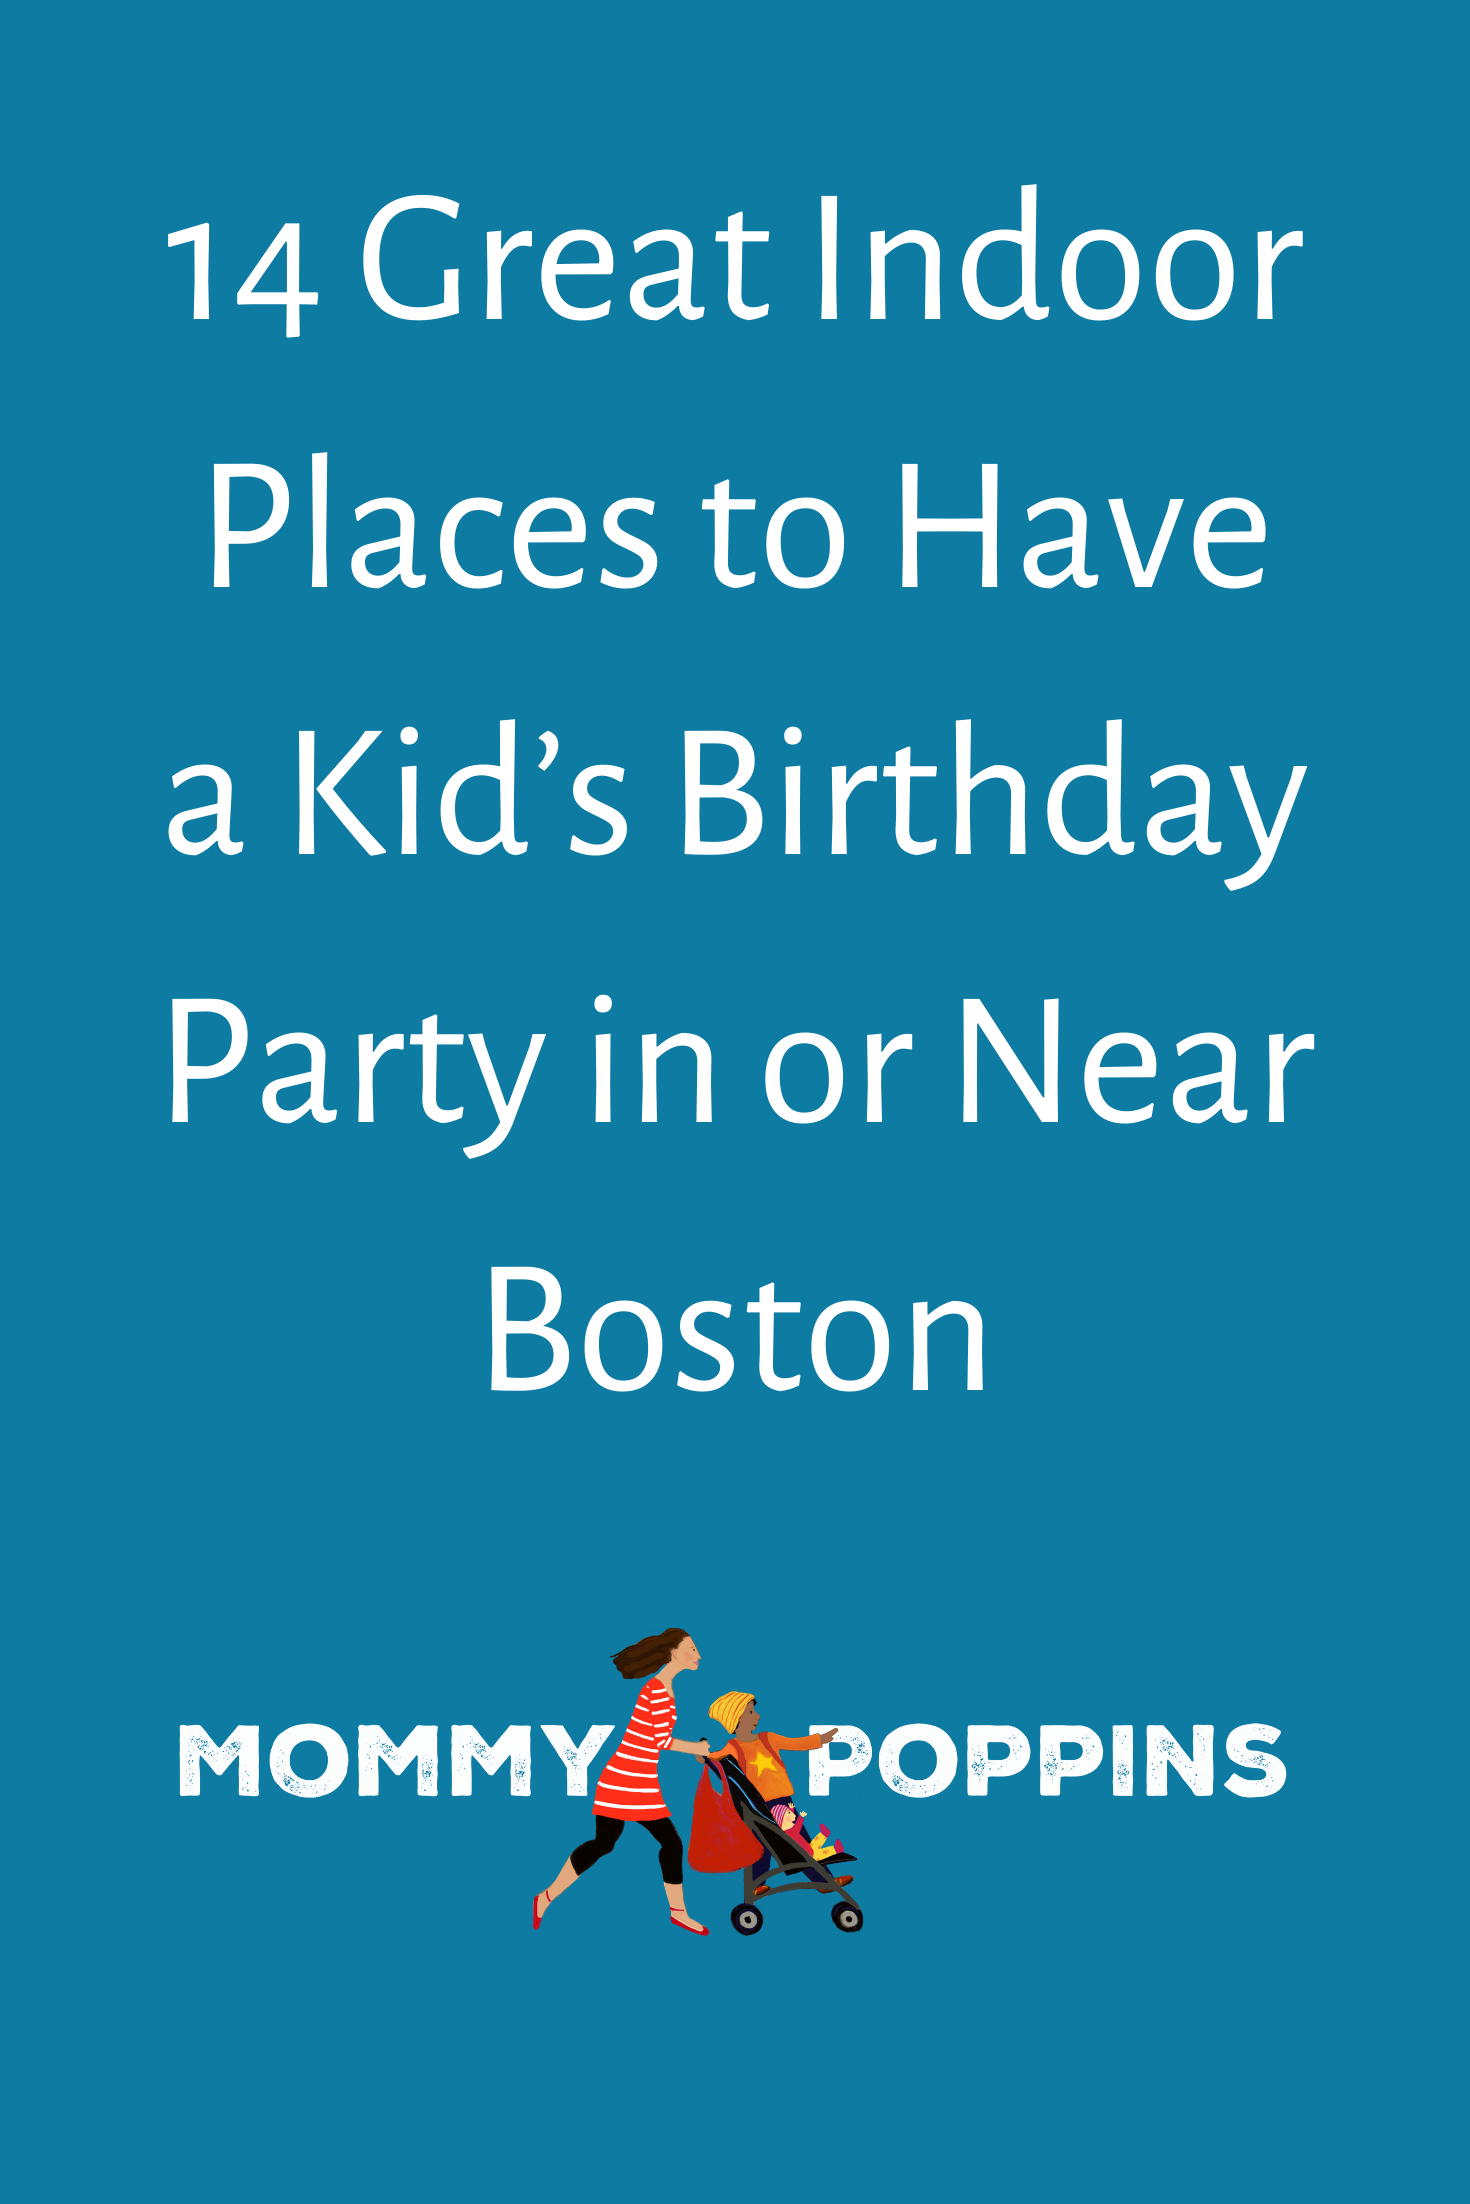 14 Great Indoor Places to Have a Kid's Birthday Party in